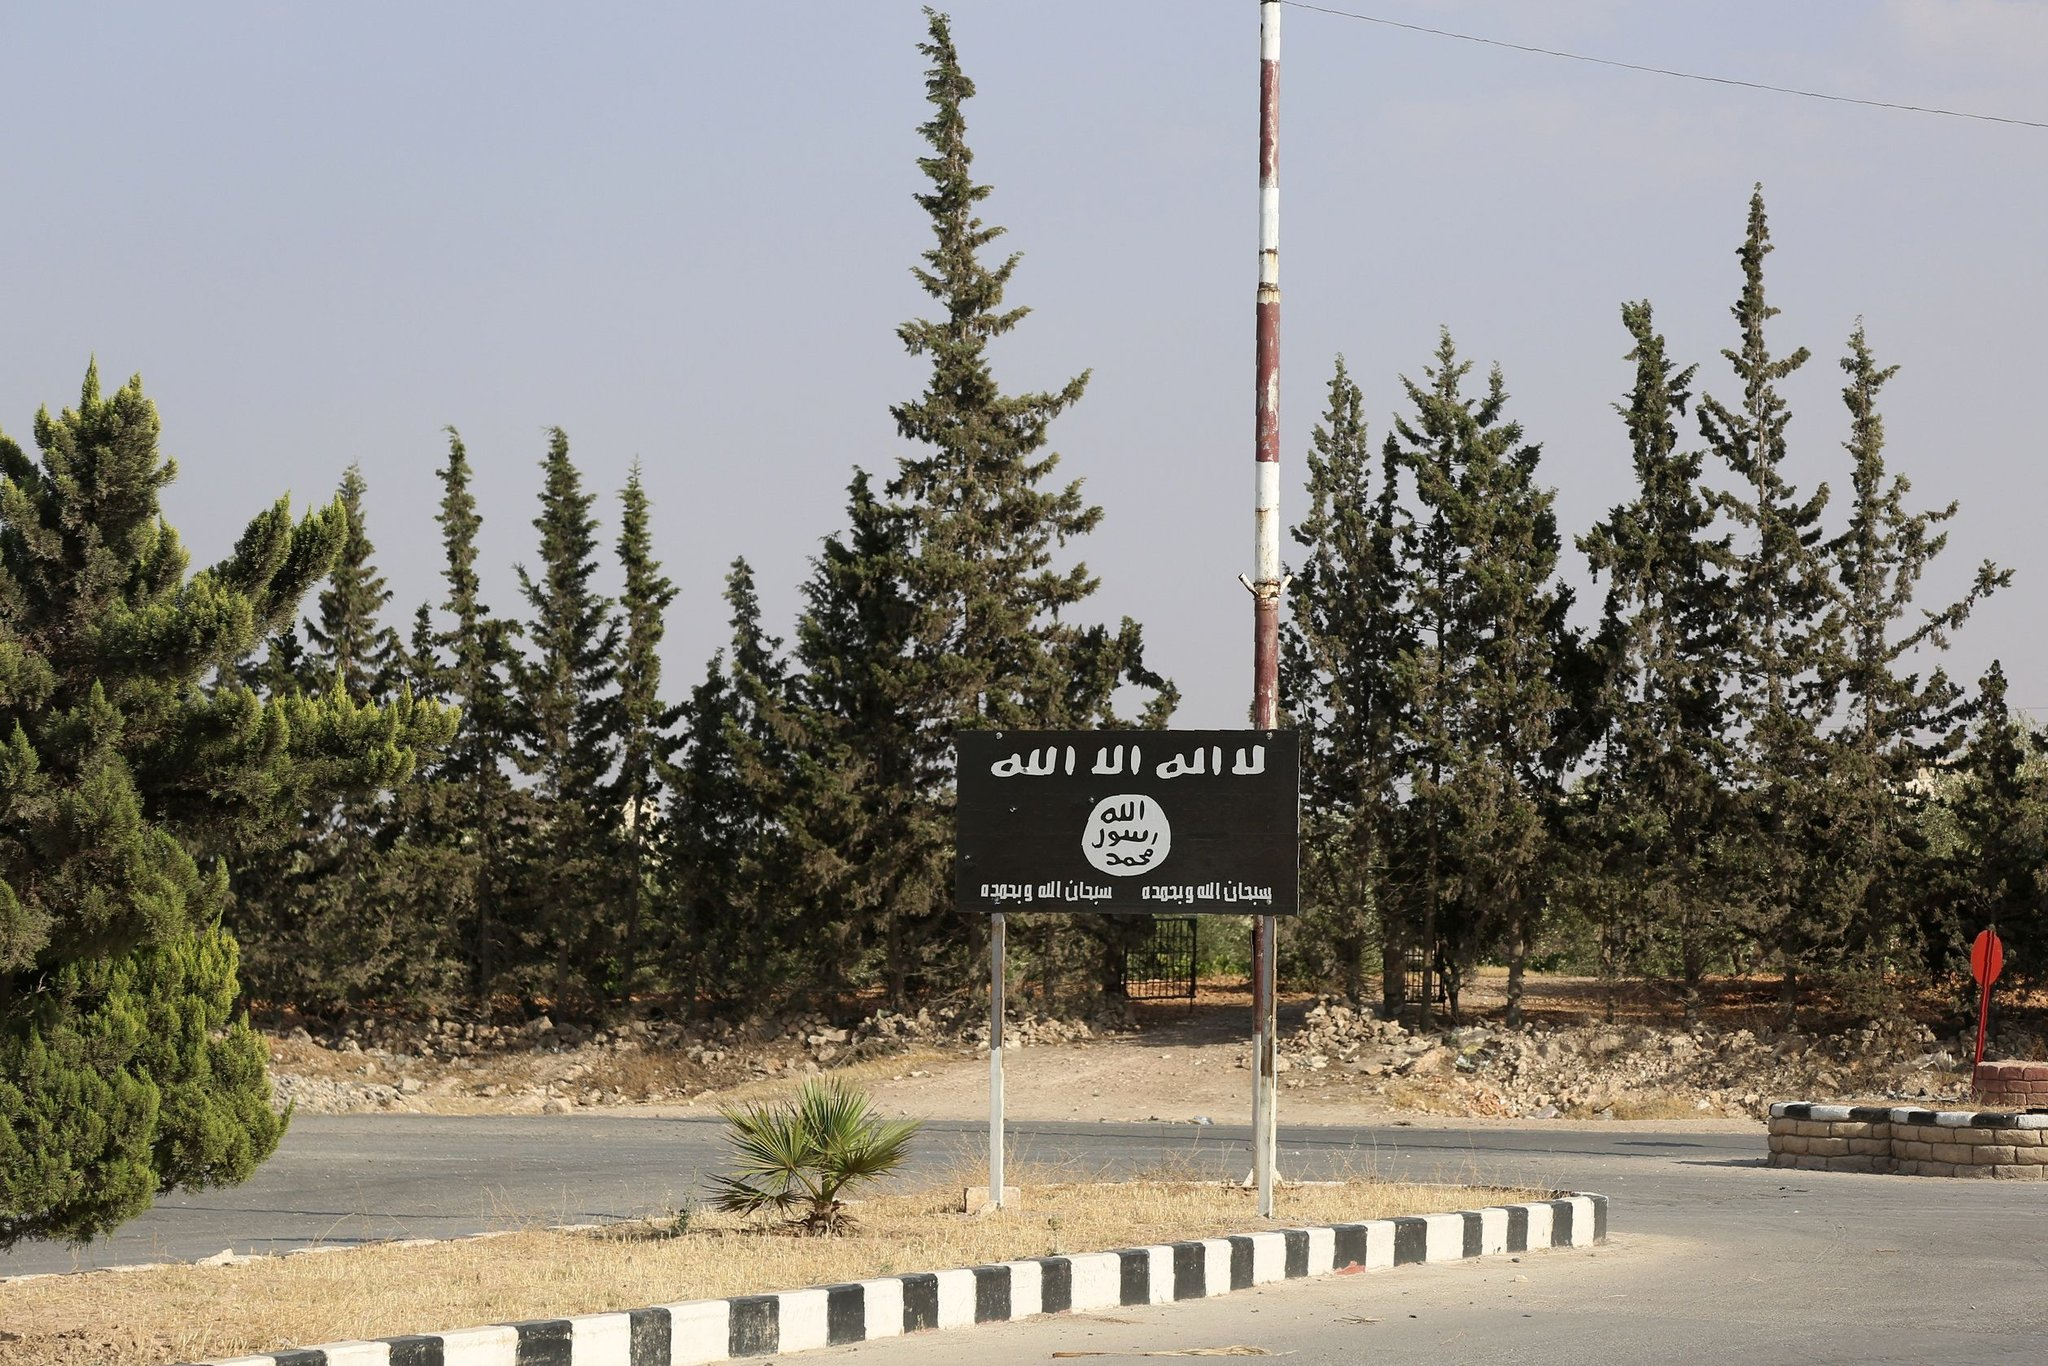 Une enseigne de l'État islamique en juin à Manbij, une ville syrienne du nord, qui était l'un des sanctuaires du groupe destiné à la conversion des combattants étrangers. Credit Delil Souleiman/Agence France-Presse — Getty Images